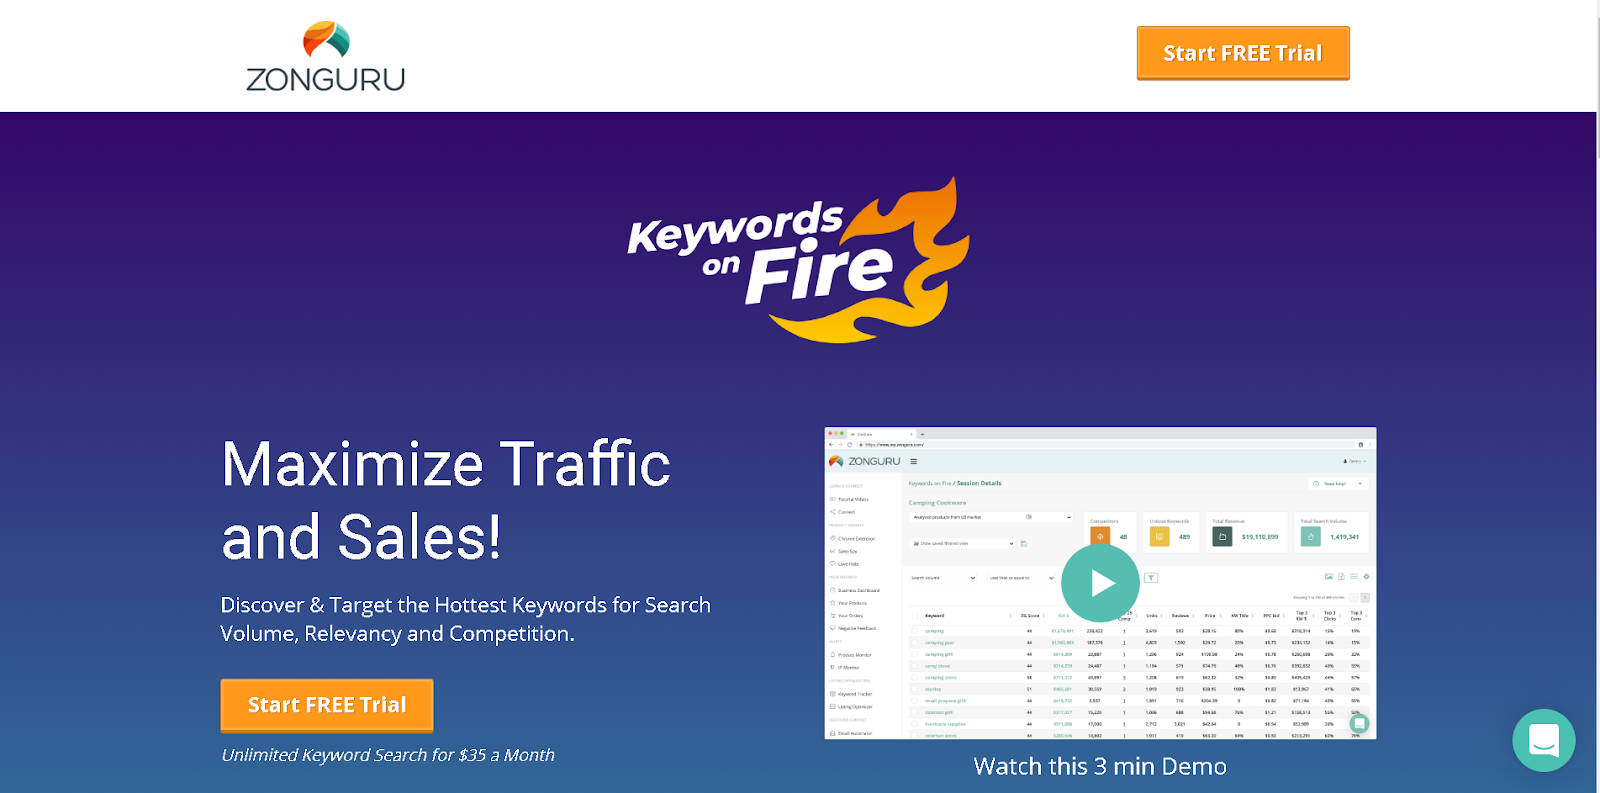 Keywords on Fire - The Most Accurate Keyword Tool from ZonGuru